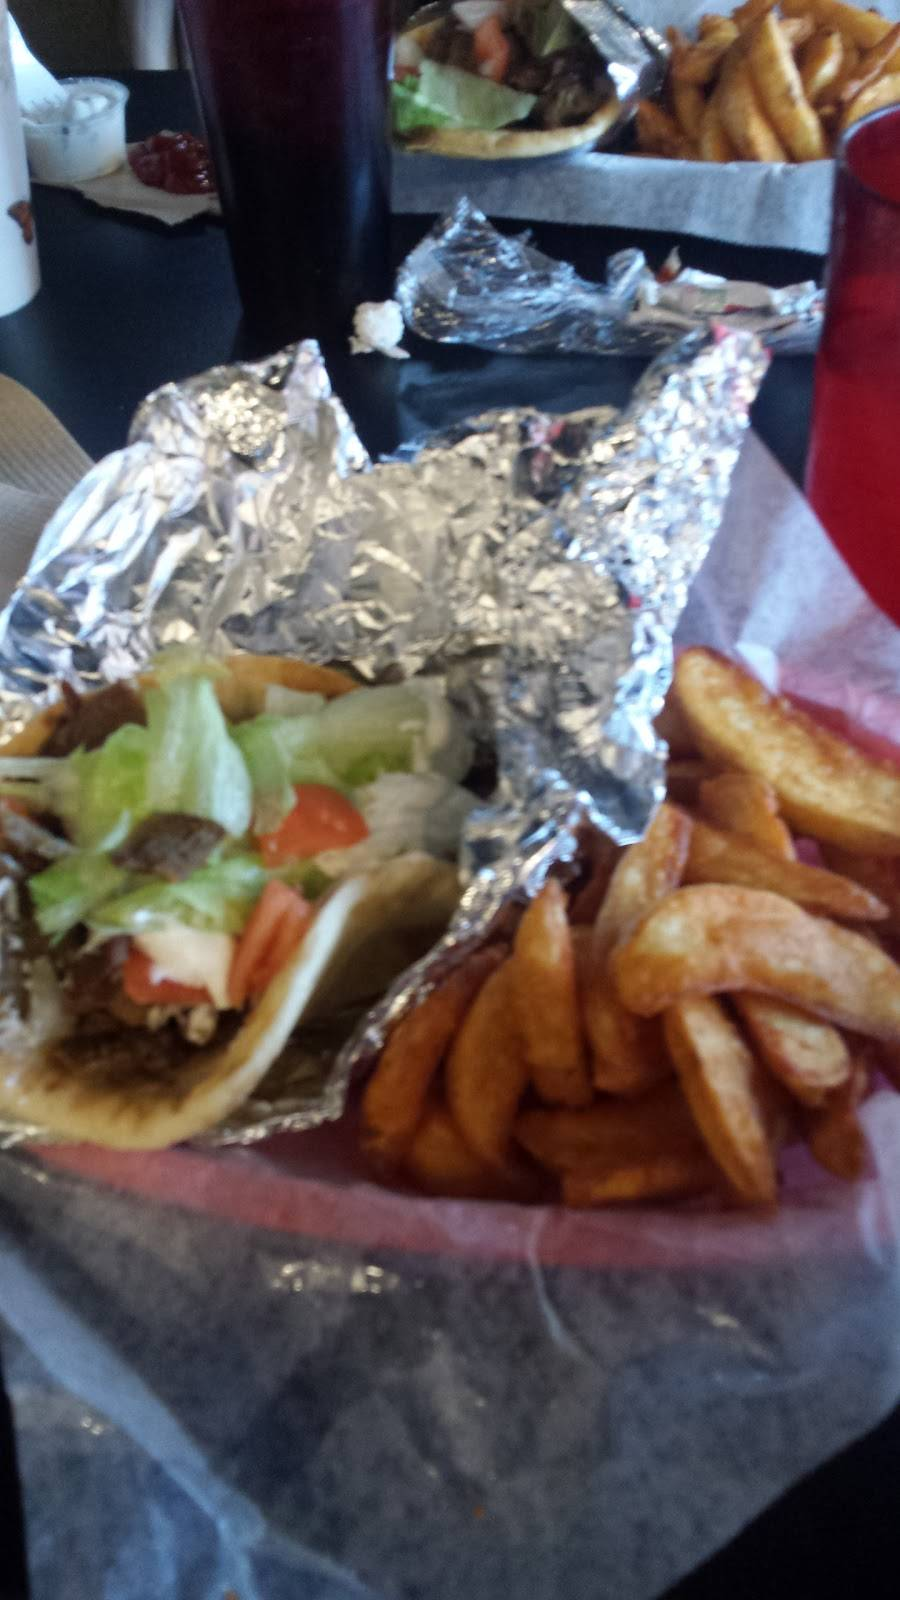 Eurogyro Restaurant 3717 Cleveland Ave Nw Canton Oh 44709 Usa 3773 cleveland ave nw canton oh 44709. 3717 cleveland ave nw canton oh 44709